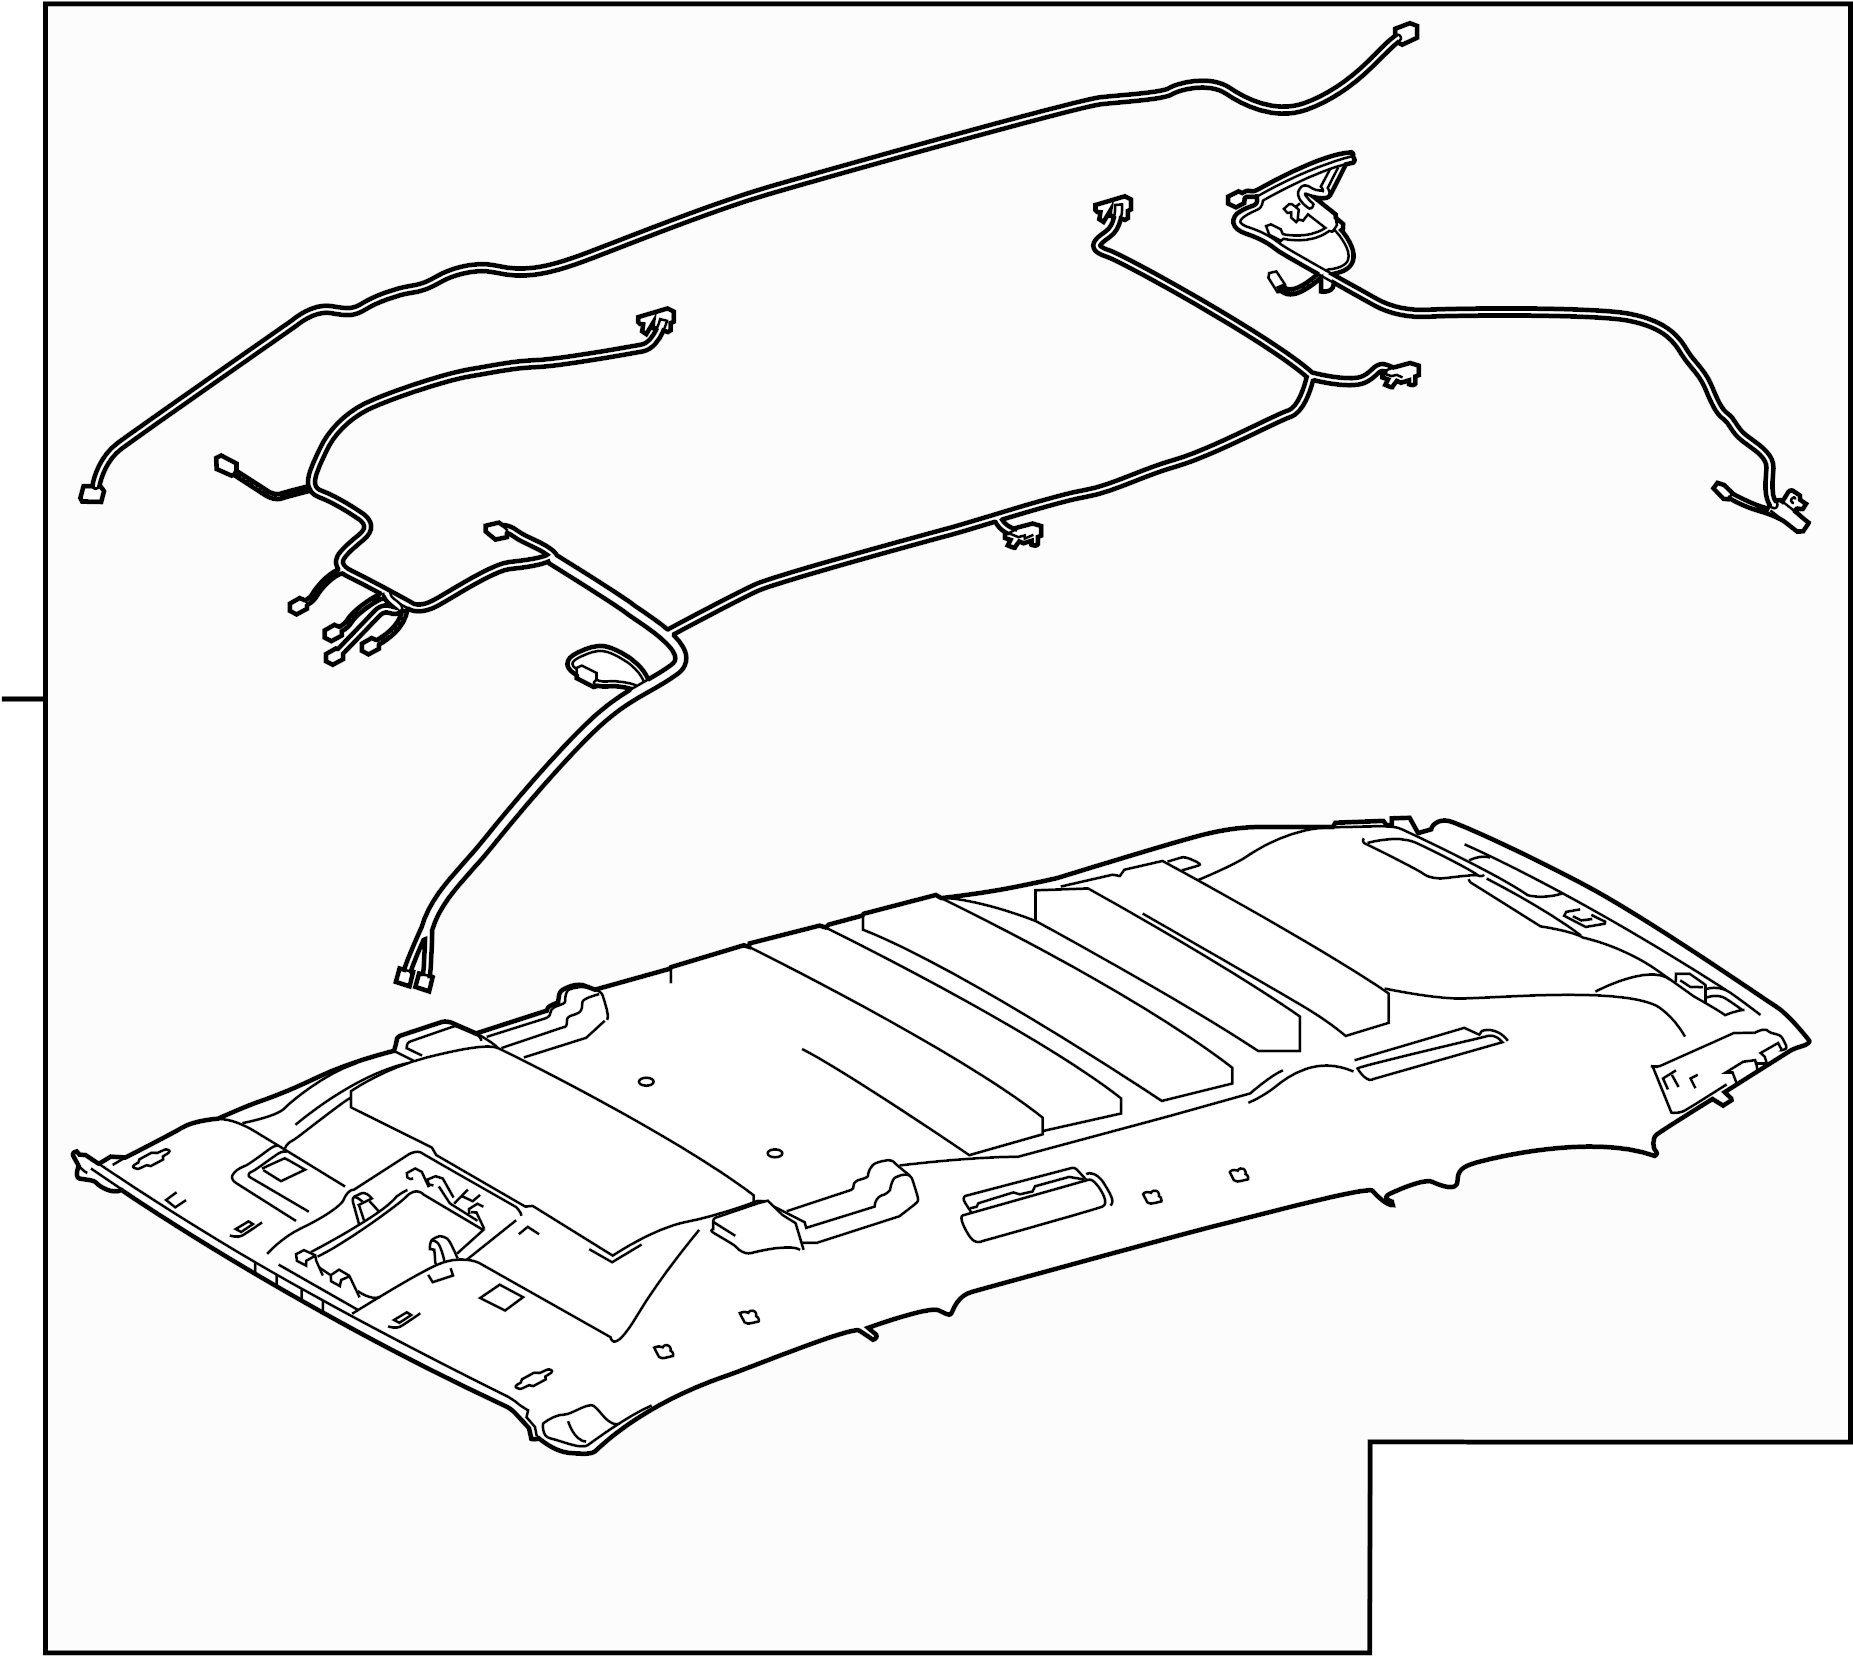 PANELLING AND LINING 26888 further 633000EA60B0 in addition 2003 Toyota Camry Universal Stereo Wiring Harness as well 1988 Toyota Pickup Fuse Box Diagram together with Elegant Titan Door Handle Replacement. on toyota grab handle